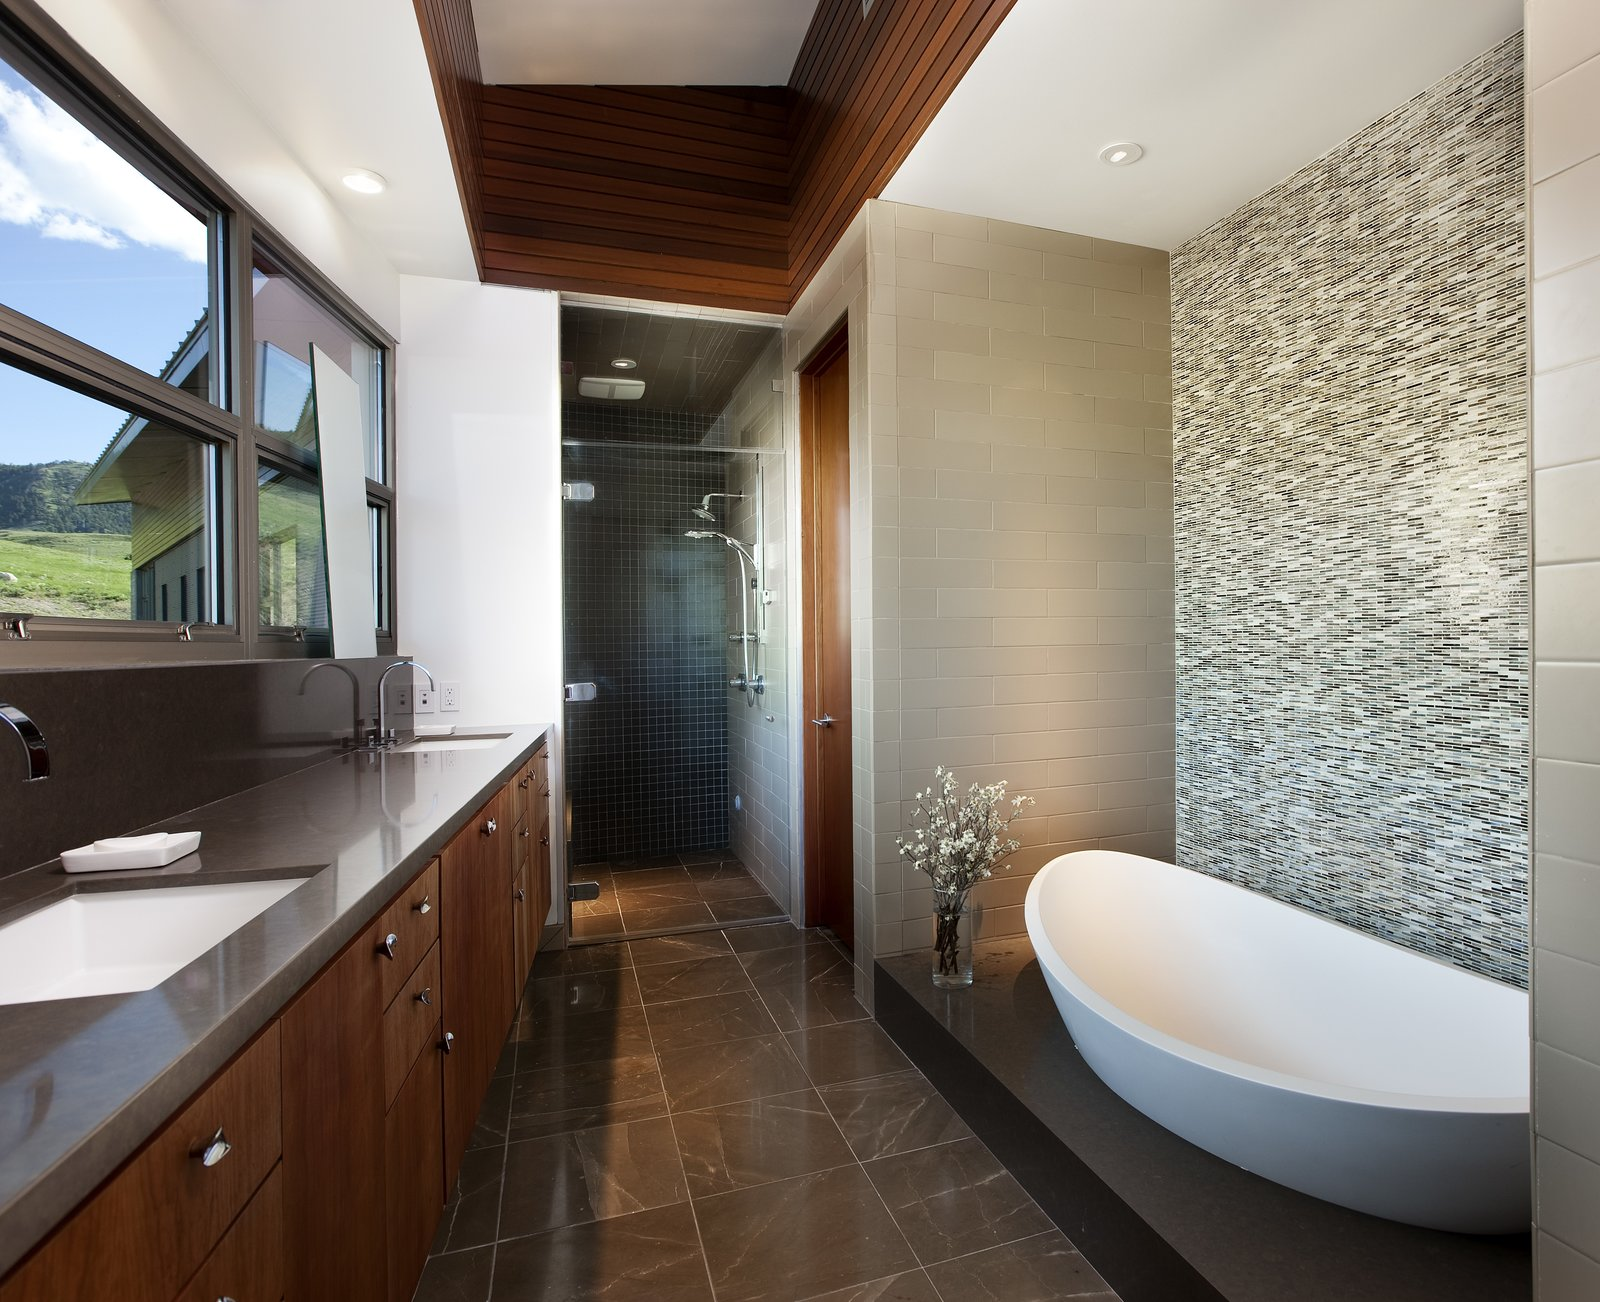 Redwood paneling is also seen in the master bathroom, complimenting the cool-toned mosaic tiles.